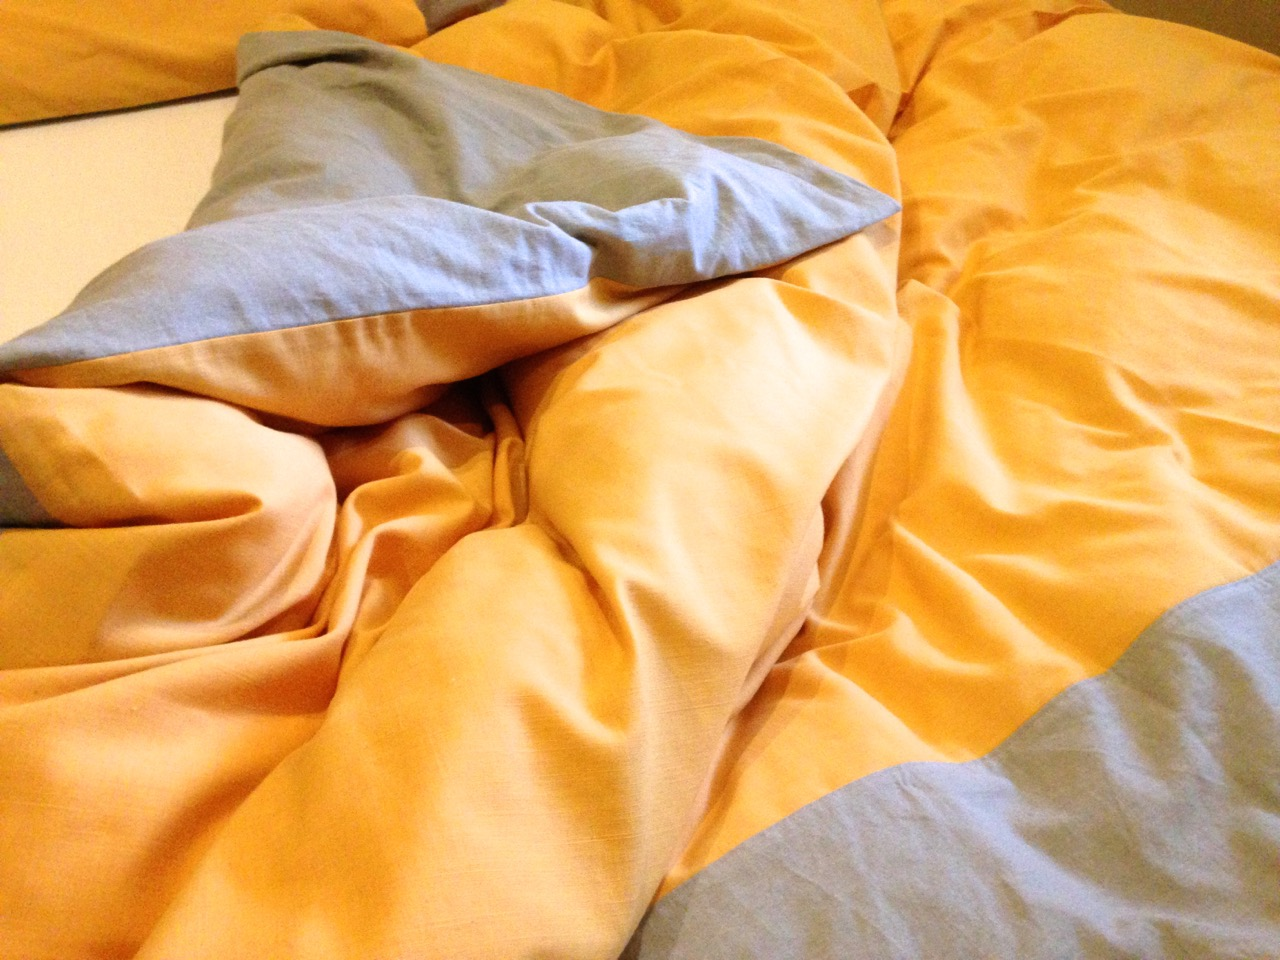 Handmade linen bed sheets tutorial